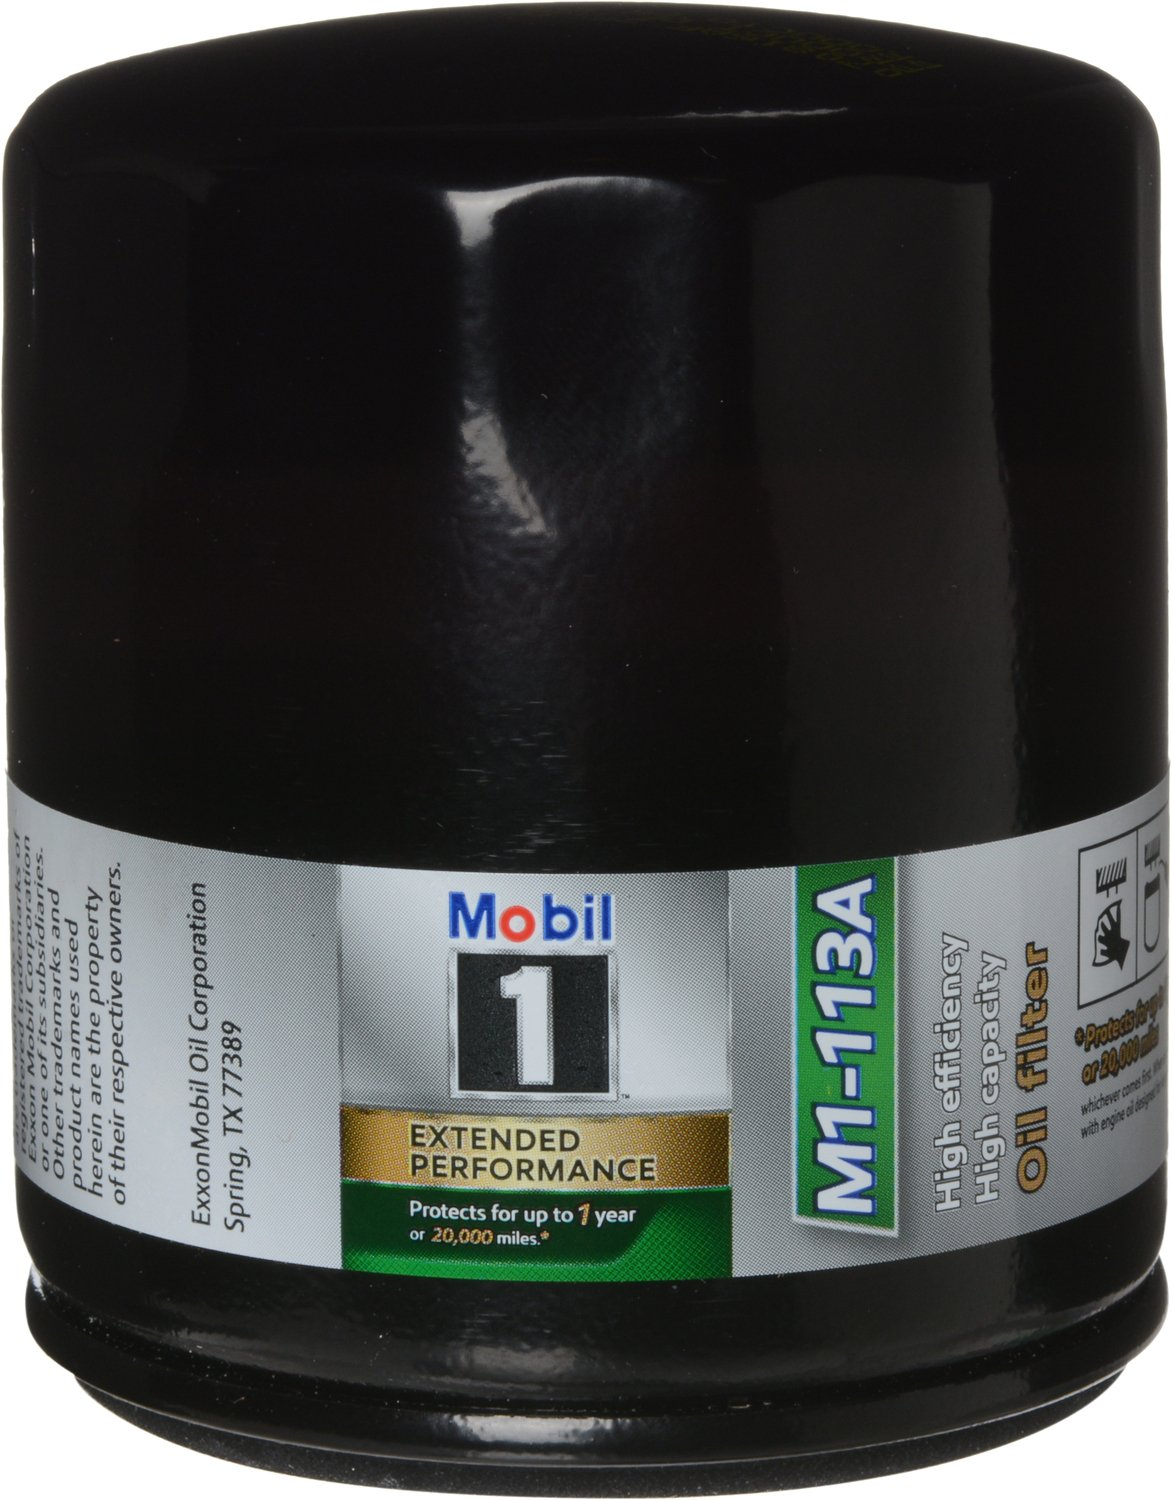 Mobil 1 M1-113A Extended Performance Oil Filter, 2 Pack, by Mobil 1